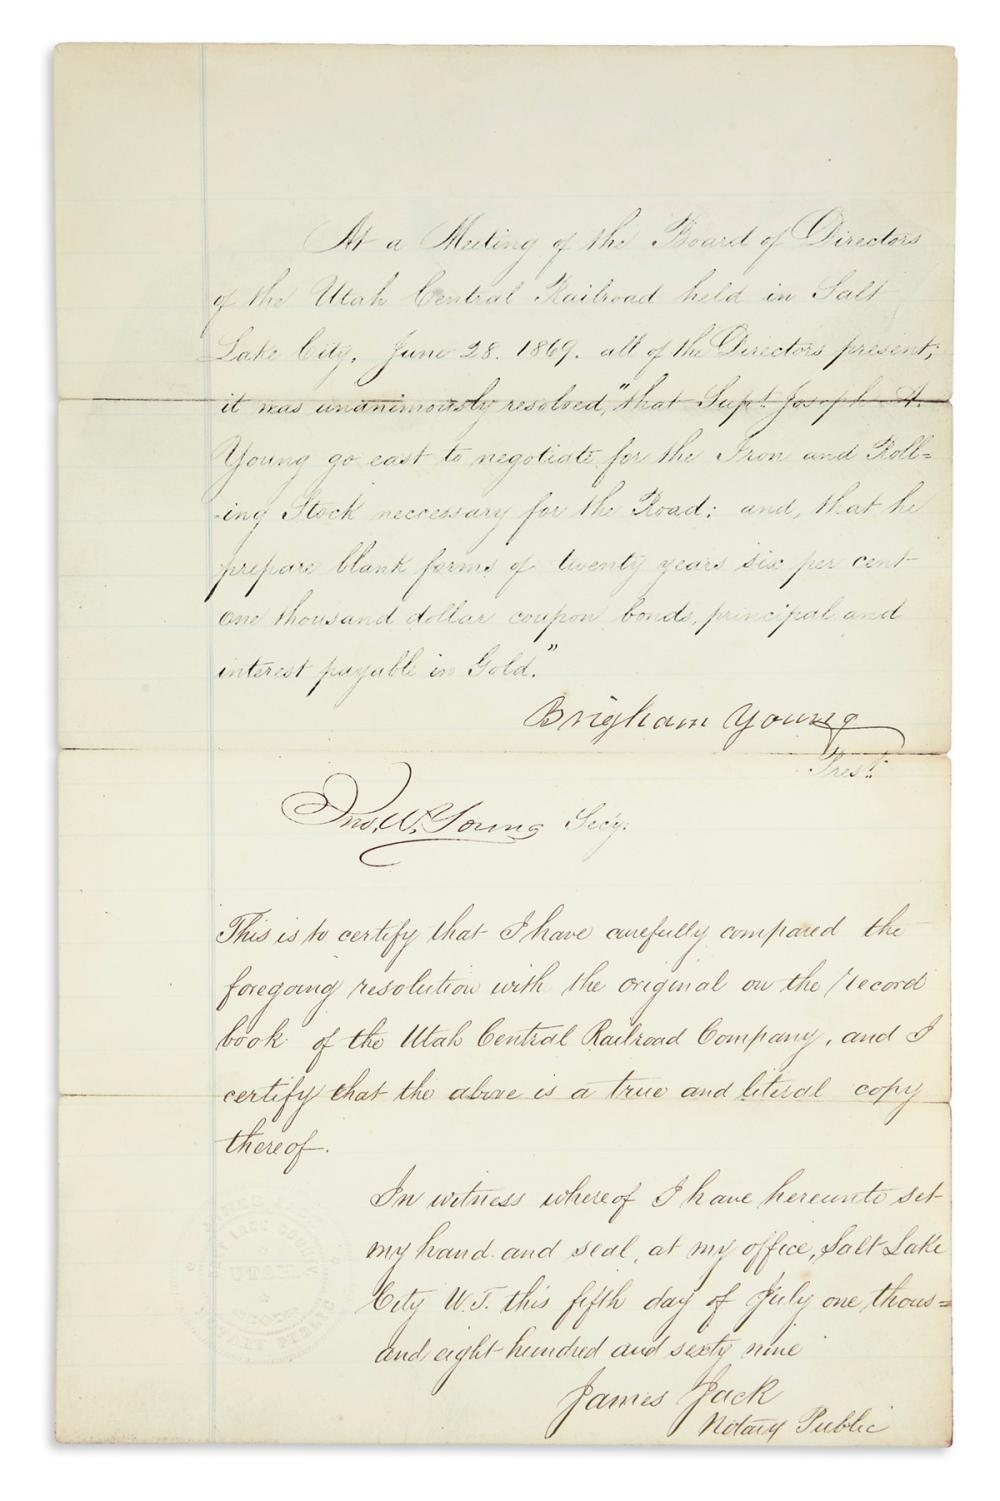 YOUNG, BRIGHAM. Document Signed, as President of the Utah Central Railroad,